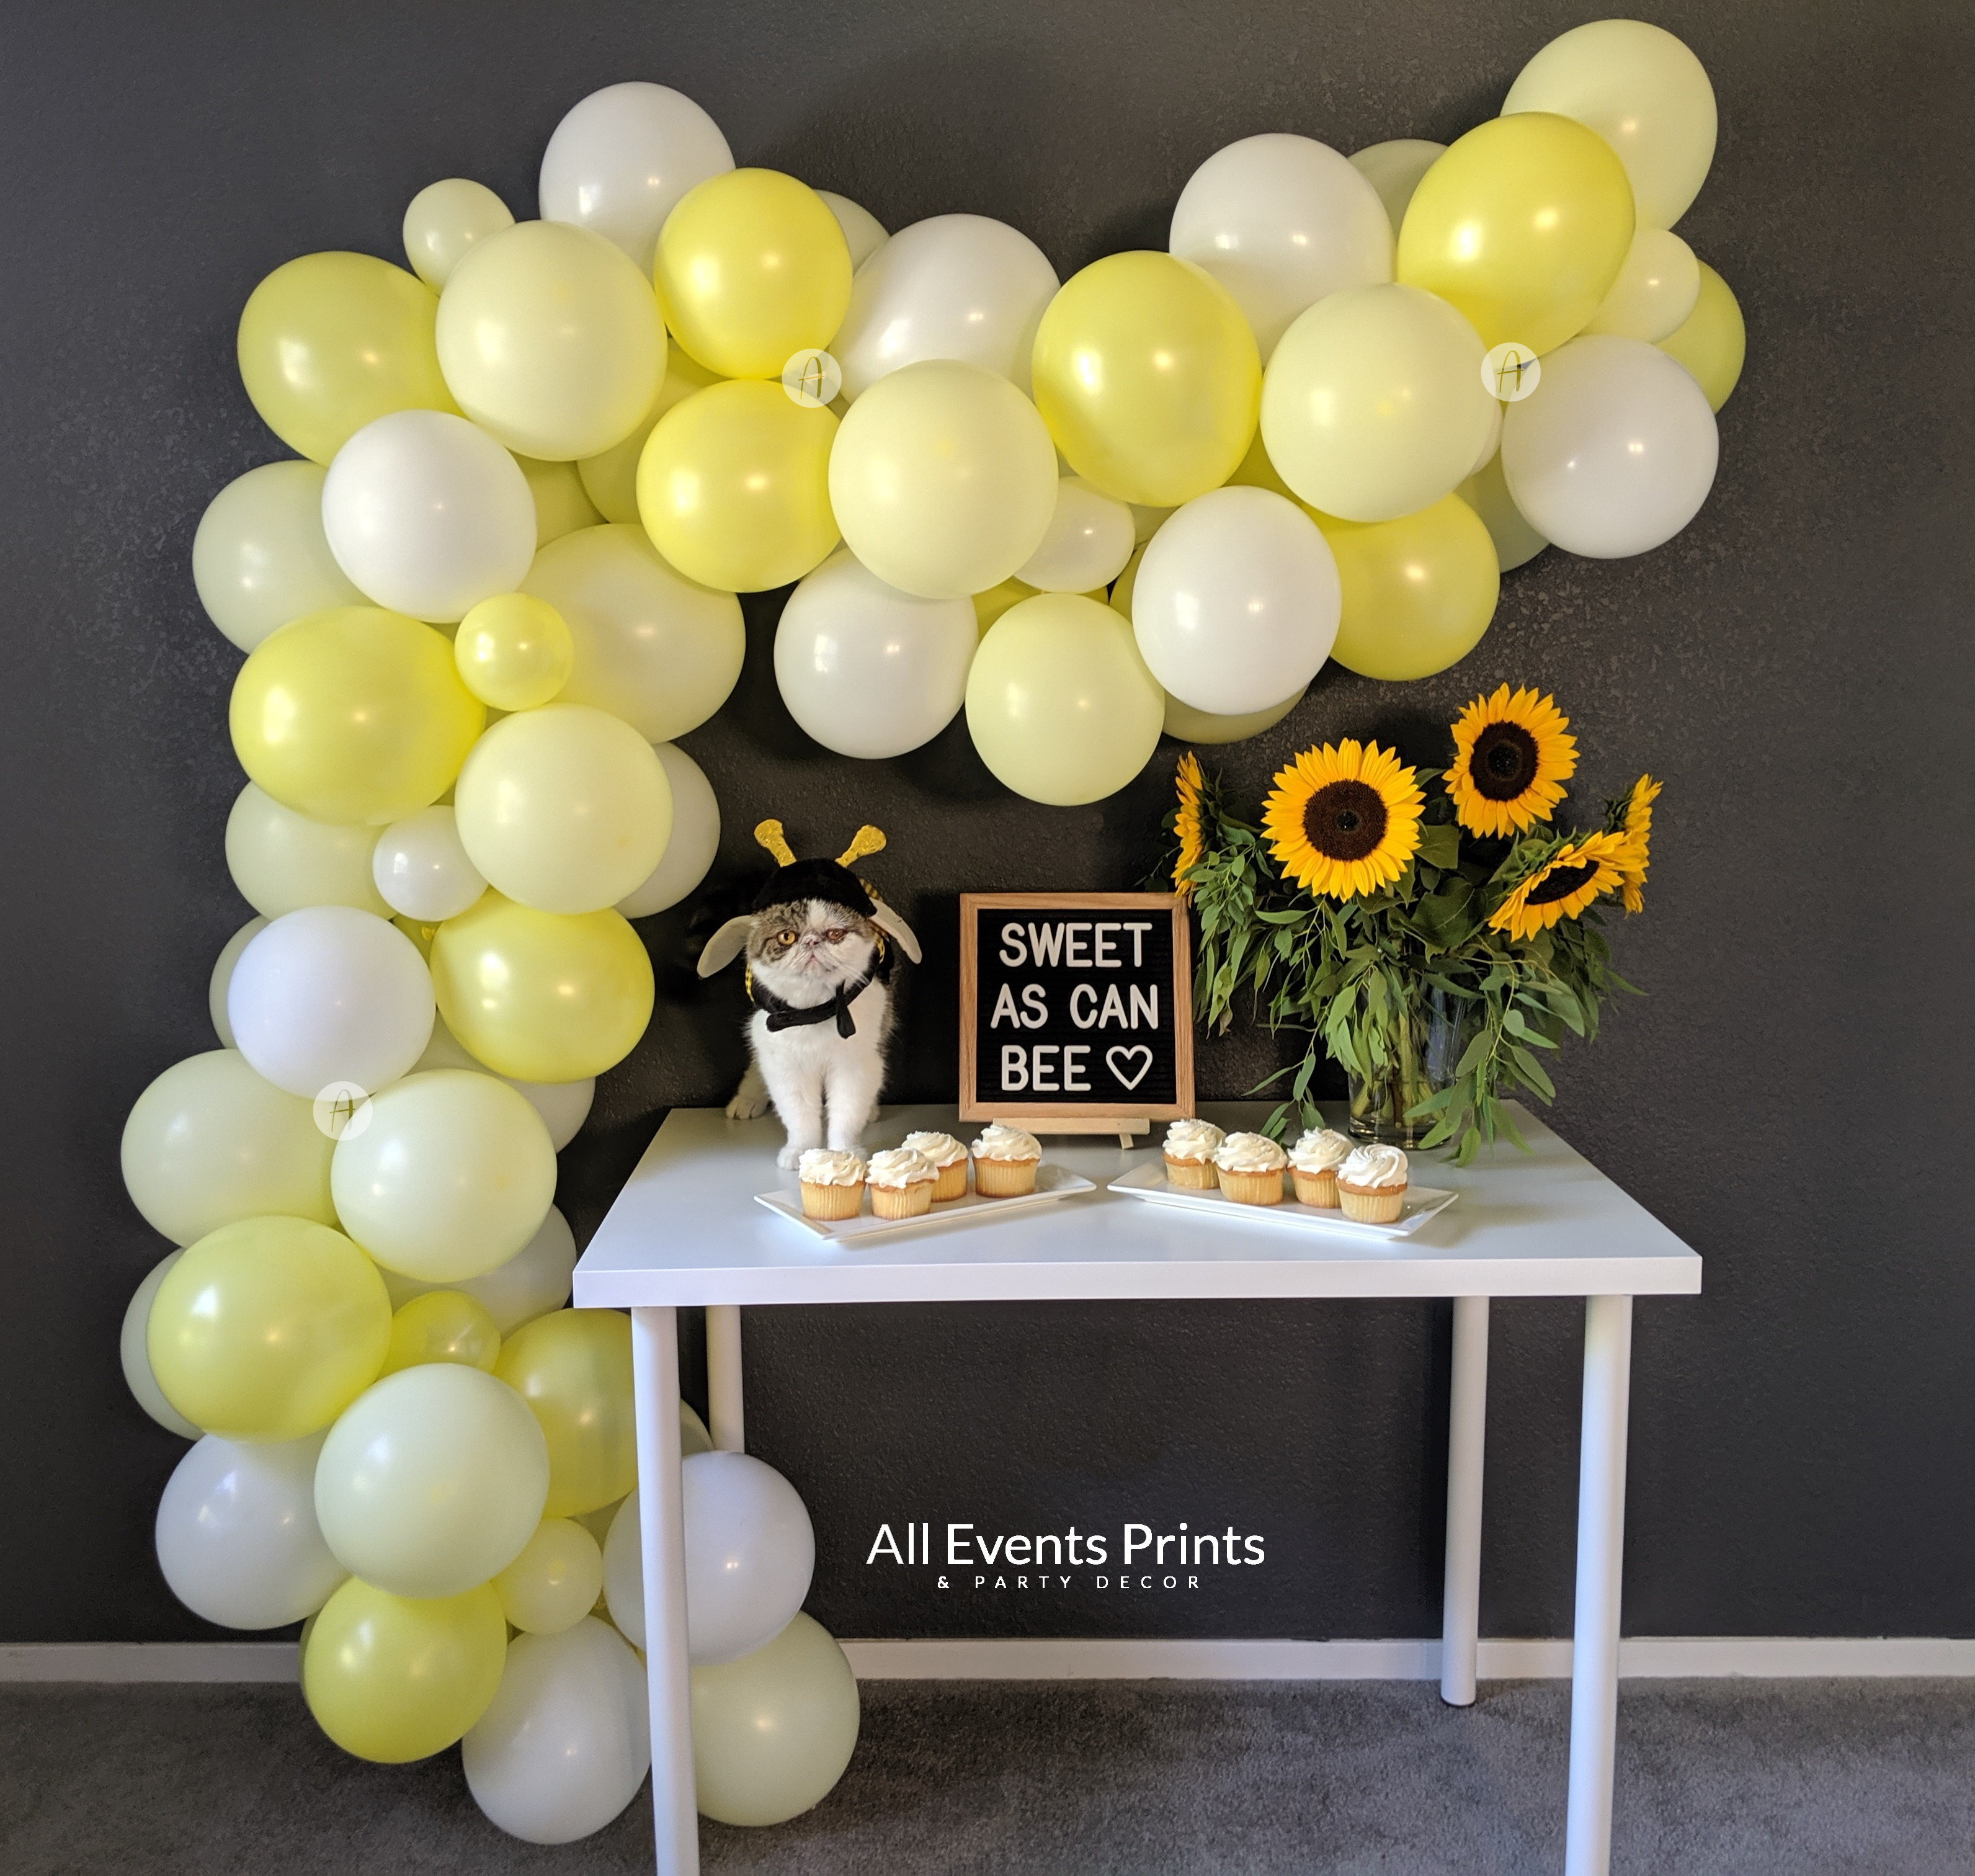 Sweet As Can Bee Balloon Garland Diy Kit 5 Ft 25 Ft Includes Everything That You Will Need For Assembly All Events Prints Party Decor